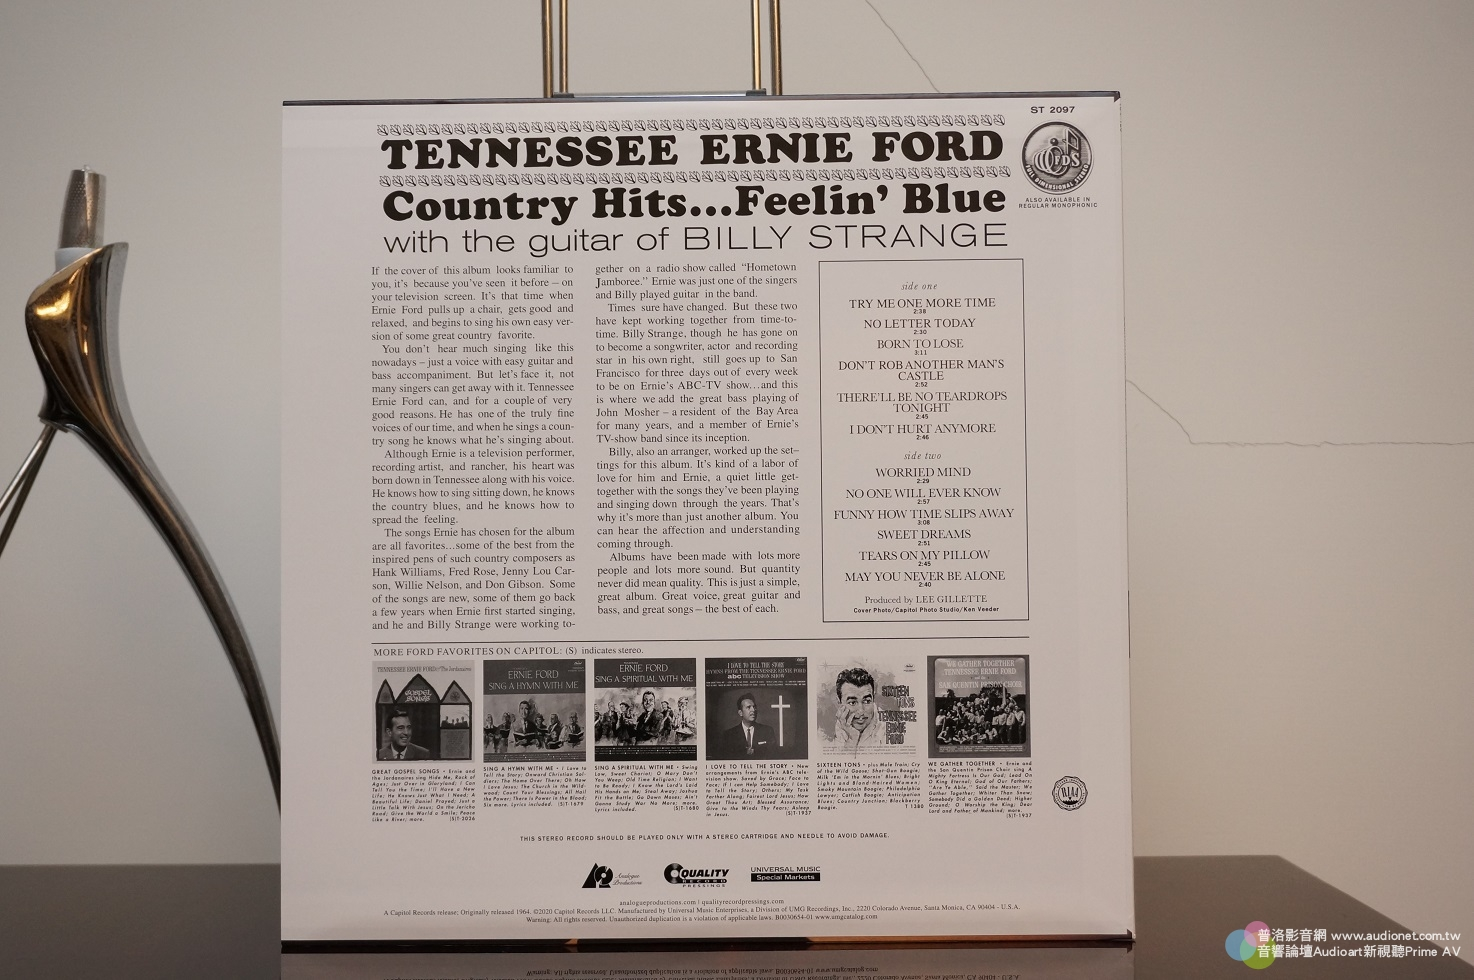 Tennessee Ernie Ford Country Hits, Feelin' Blue,趕快跑步去買